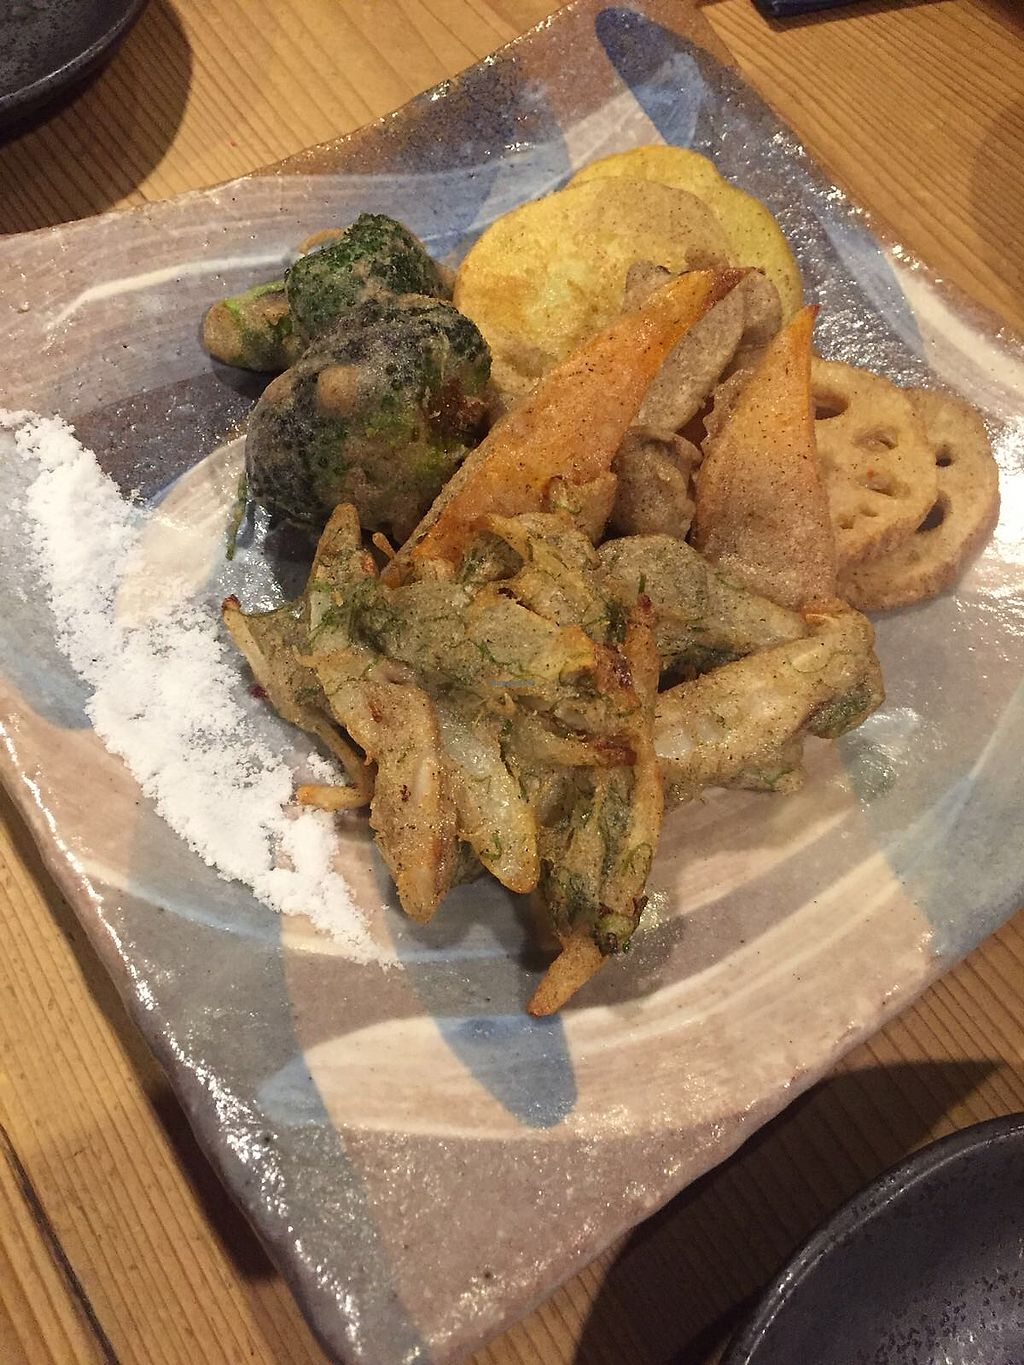 """Photo of Megumi  by <a href=""""/members/profile/linachanxd"""">linachanxd</a> <br/>Tempura Veggies.  <br/> March 2, 2018  - <a href='/contact/abuse/image/83651/365886'>Report</a>"""